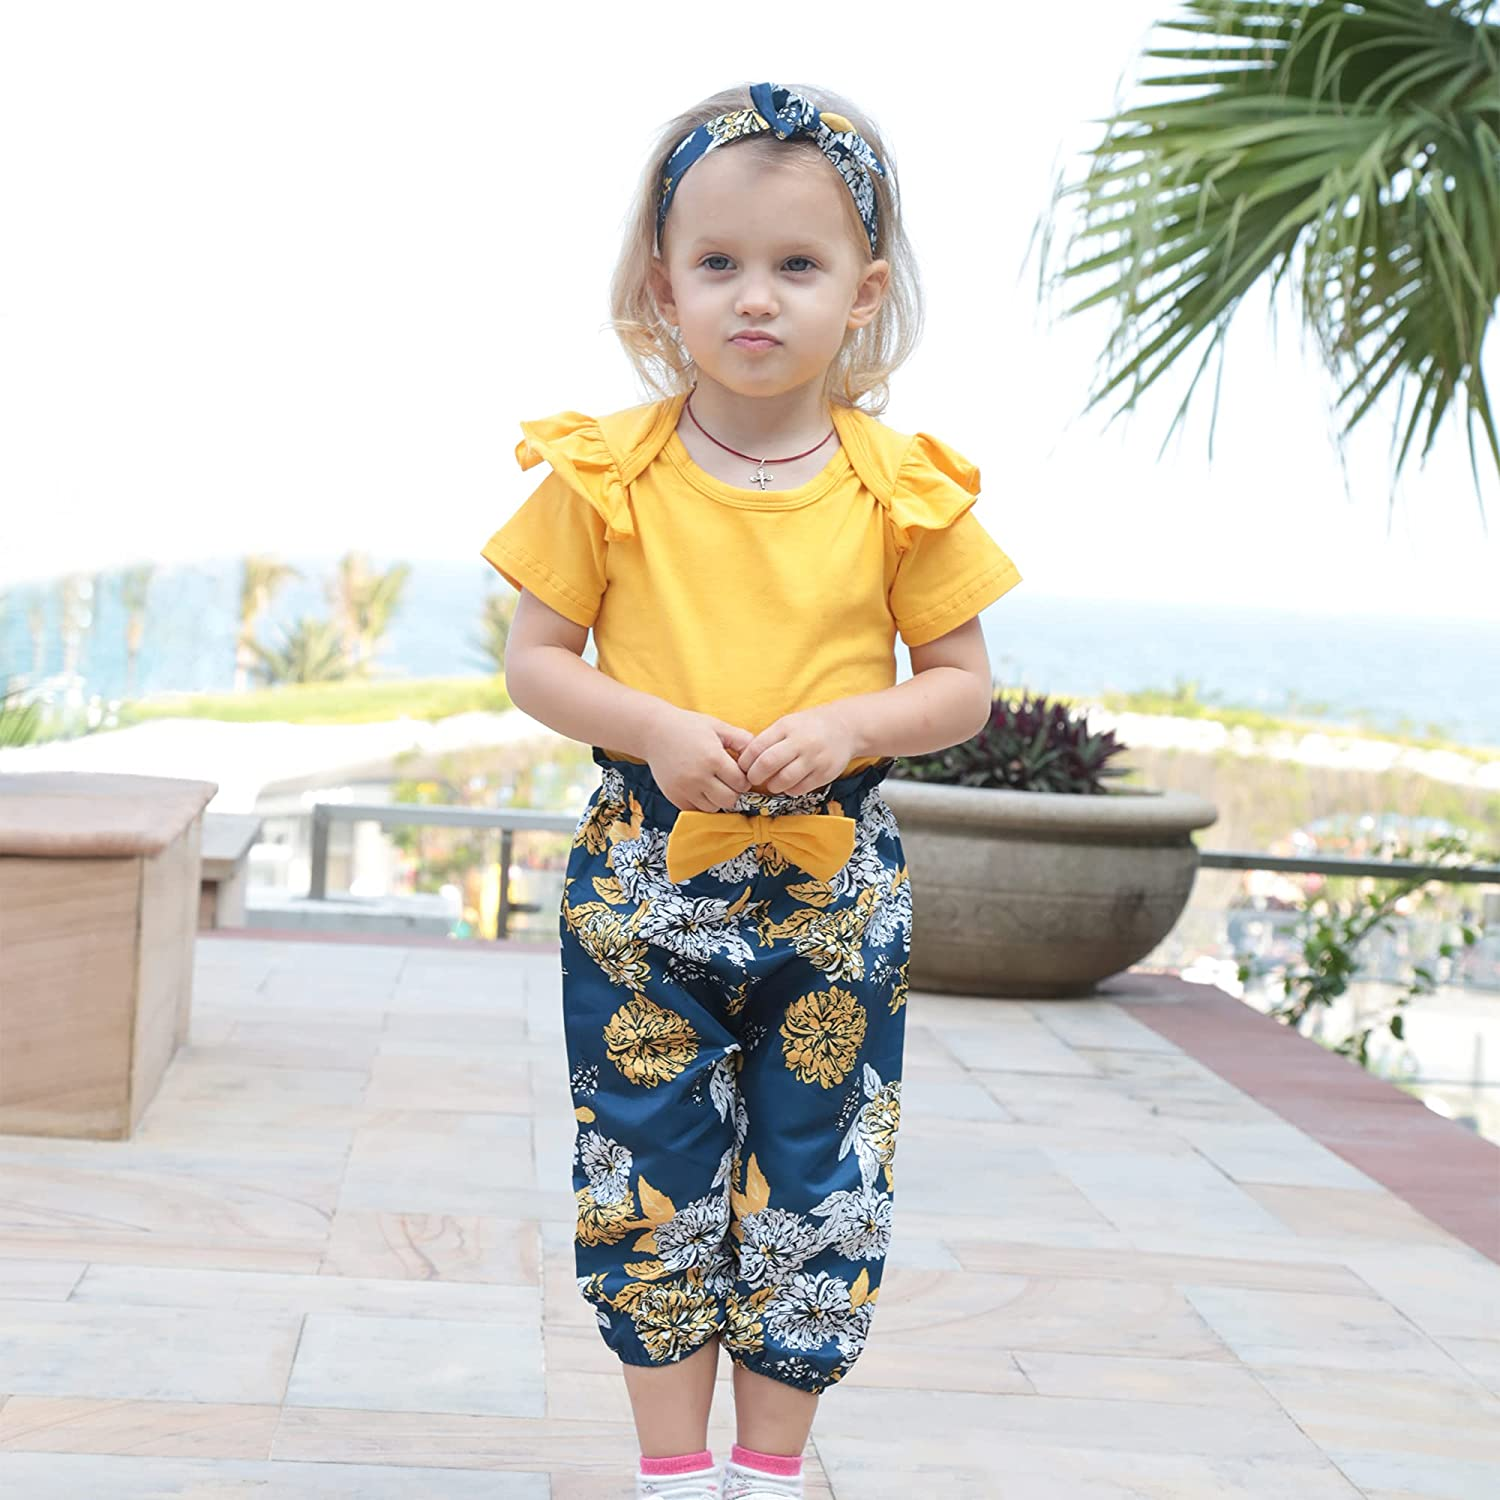 Buy Renotemy Newborn Infant Baby Girl Clothes Summer Outfits ...